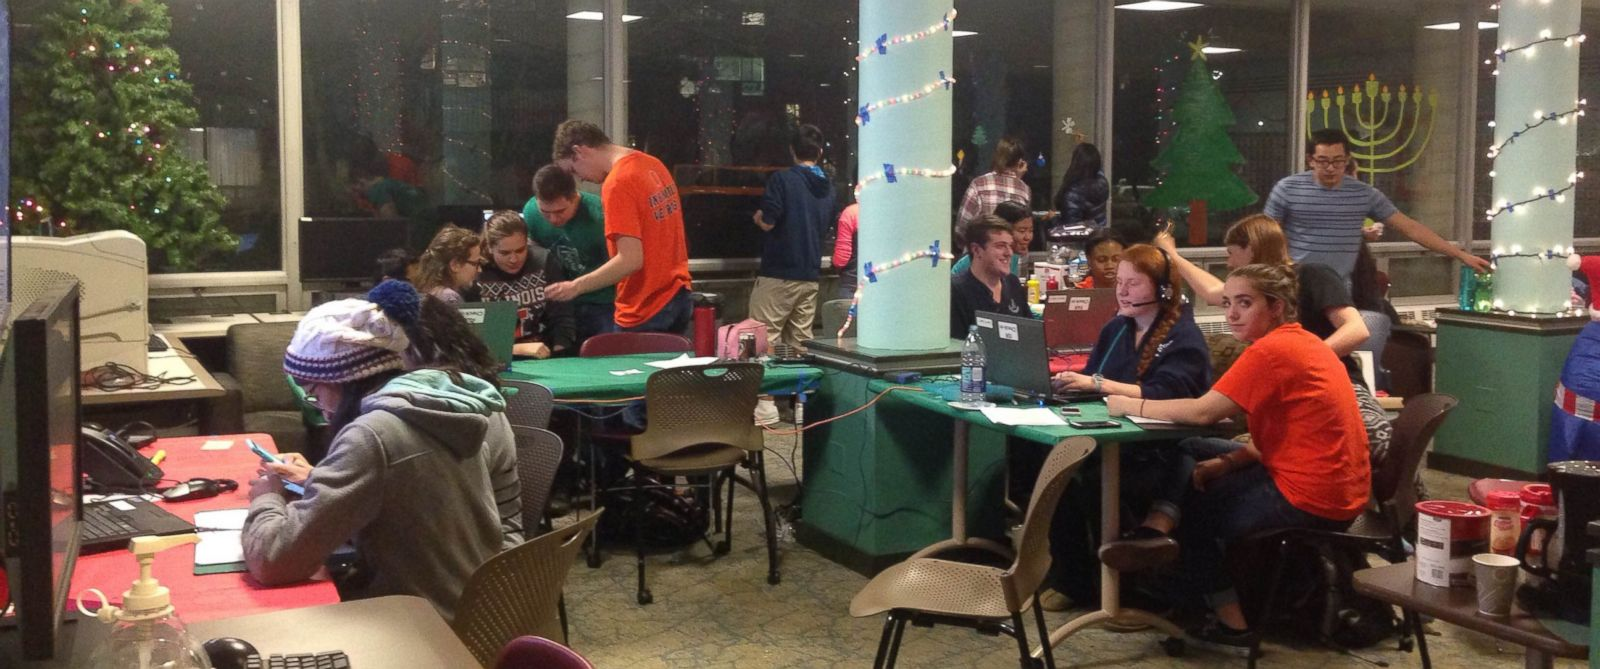 PHOTO: Volunteers at Dial-A-Carol are available to sing holiday tunes to callers from around the world at all hours of the day.